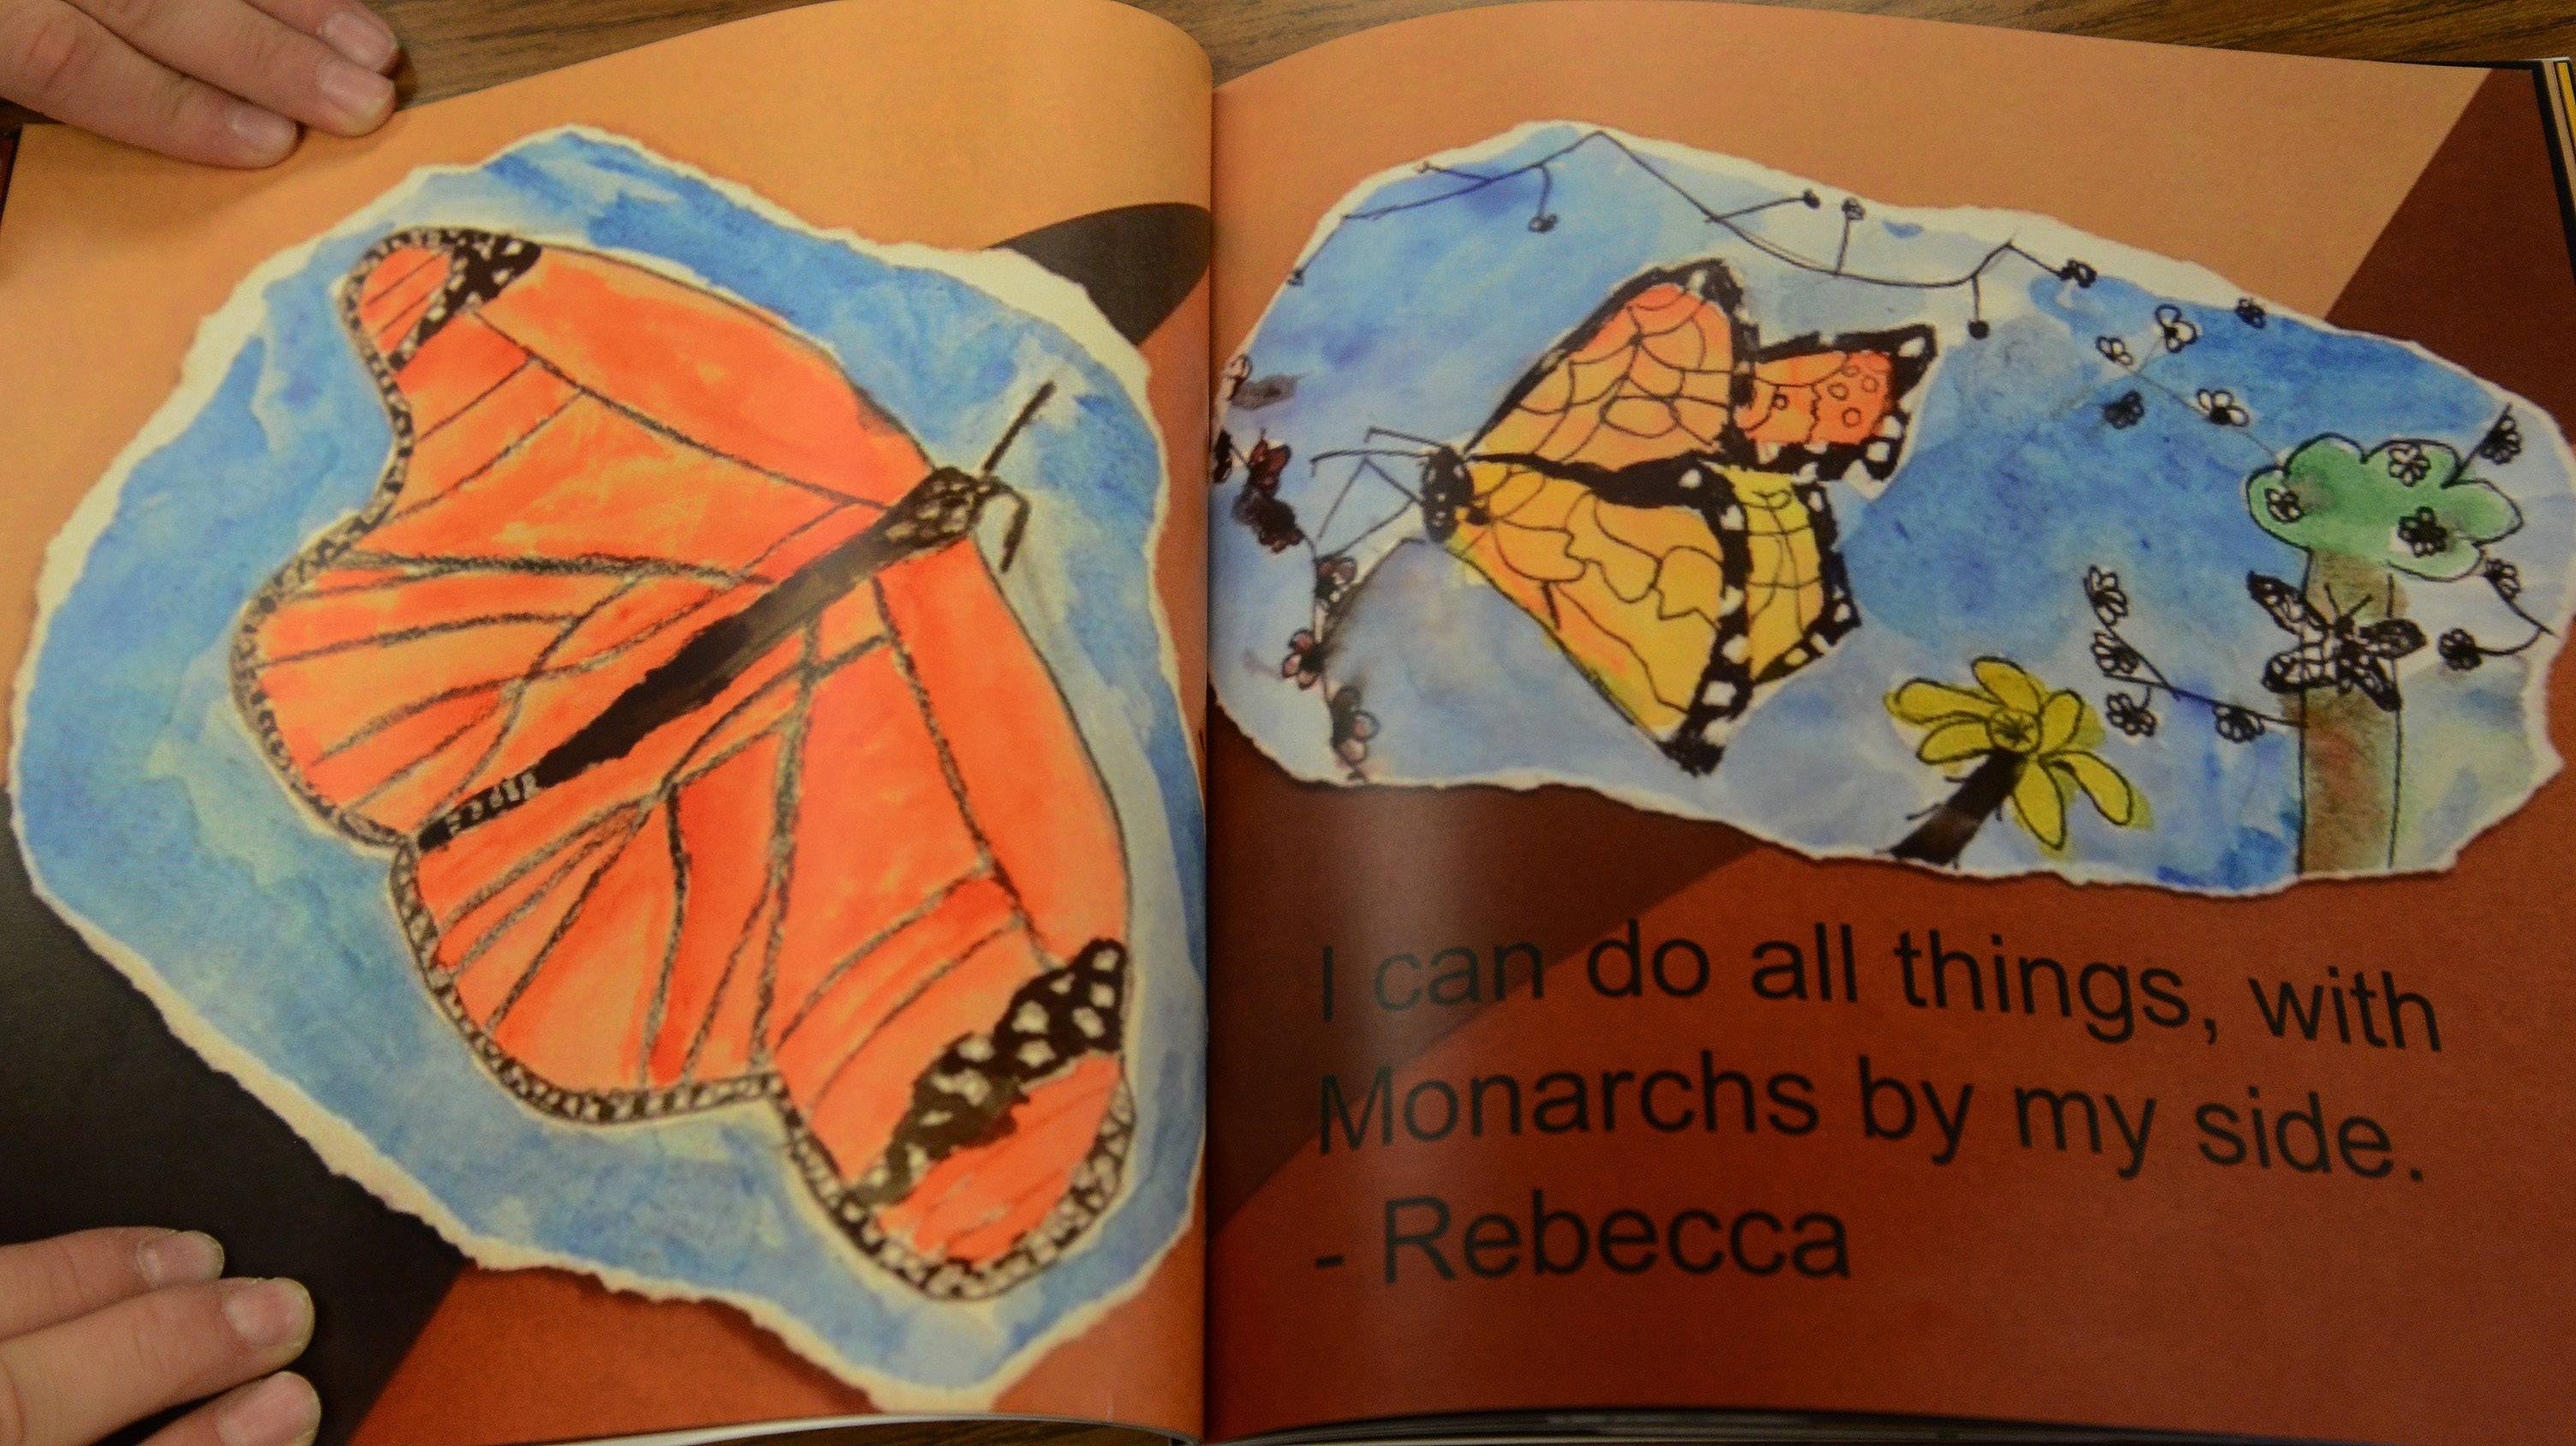 These illustrations are part of the book Kim Savino's fifth- and sixth-grade classes at Michael Collins Elementary School in Schaumburg produced as part of the monarch butterfly project. Money from book sales will be used for the project.